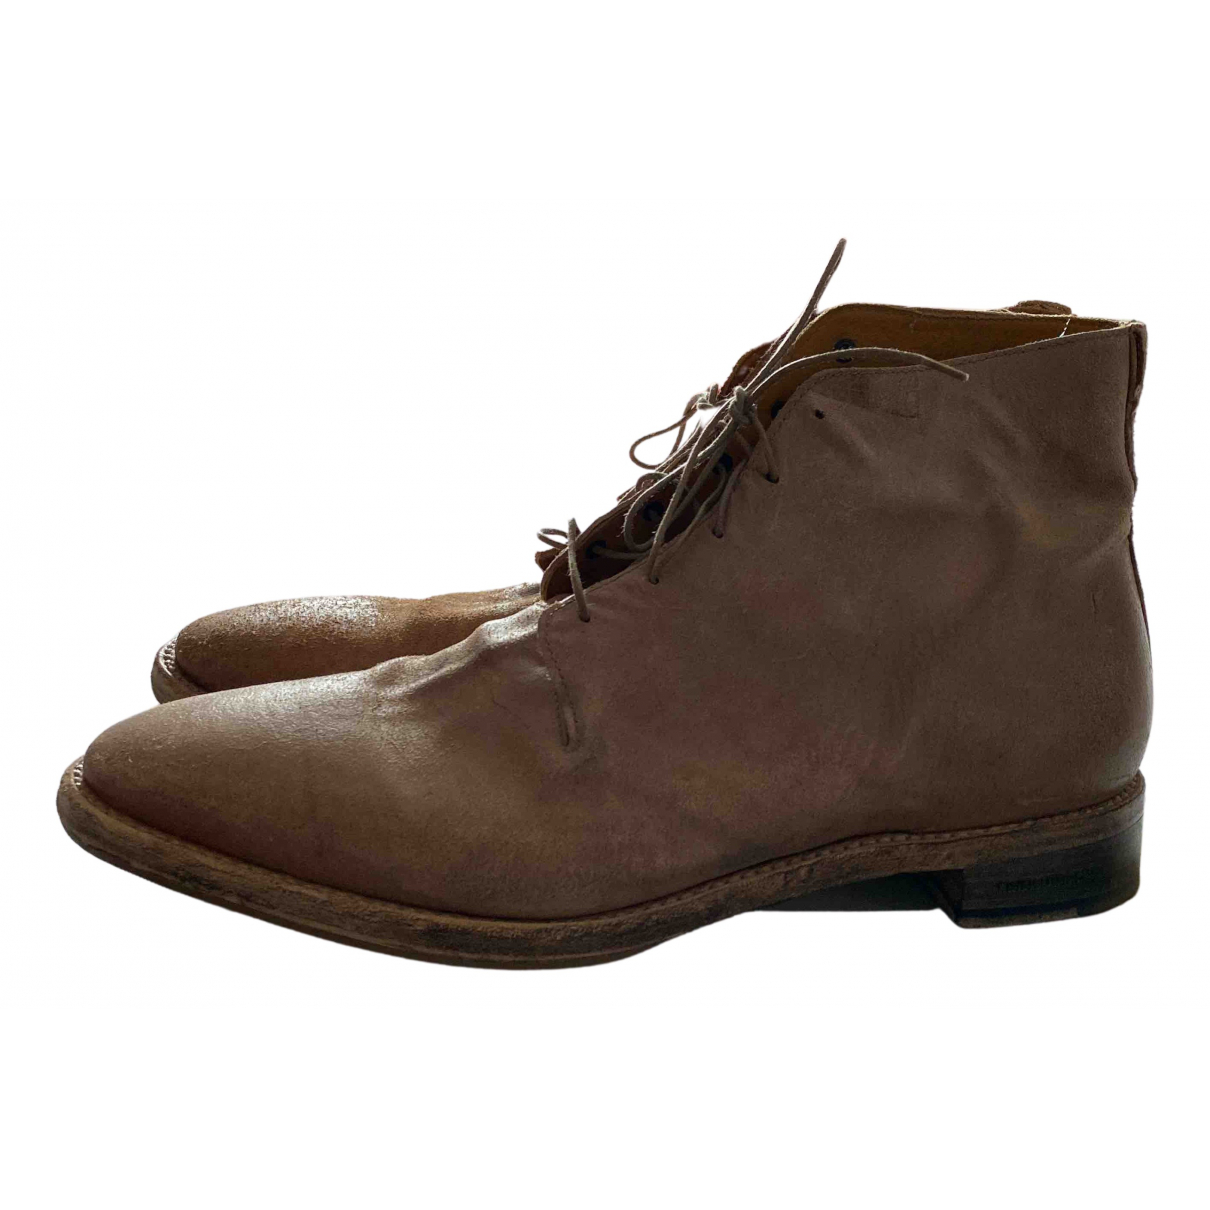 Dsquared2 N Beige Leather Boots for Men 43 EU